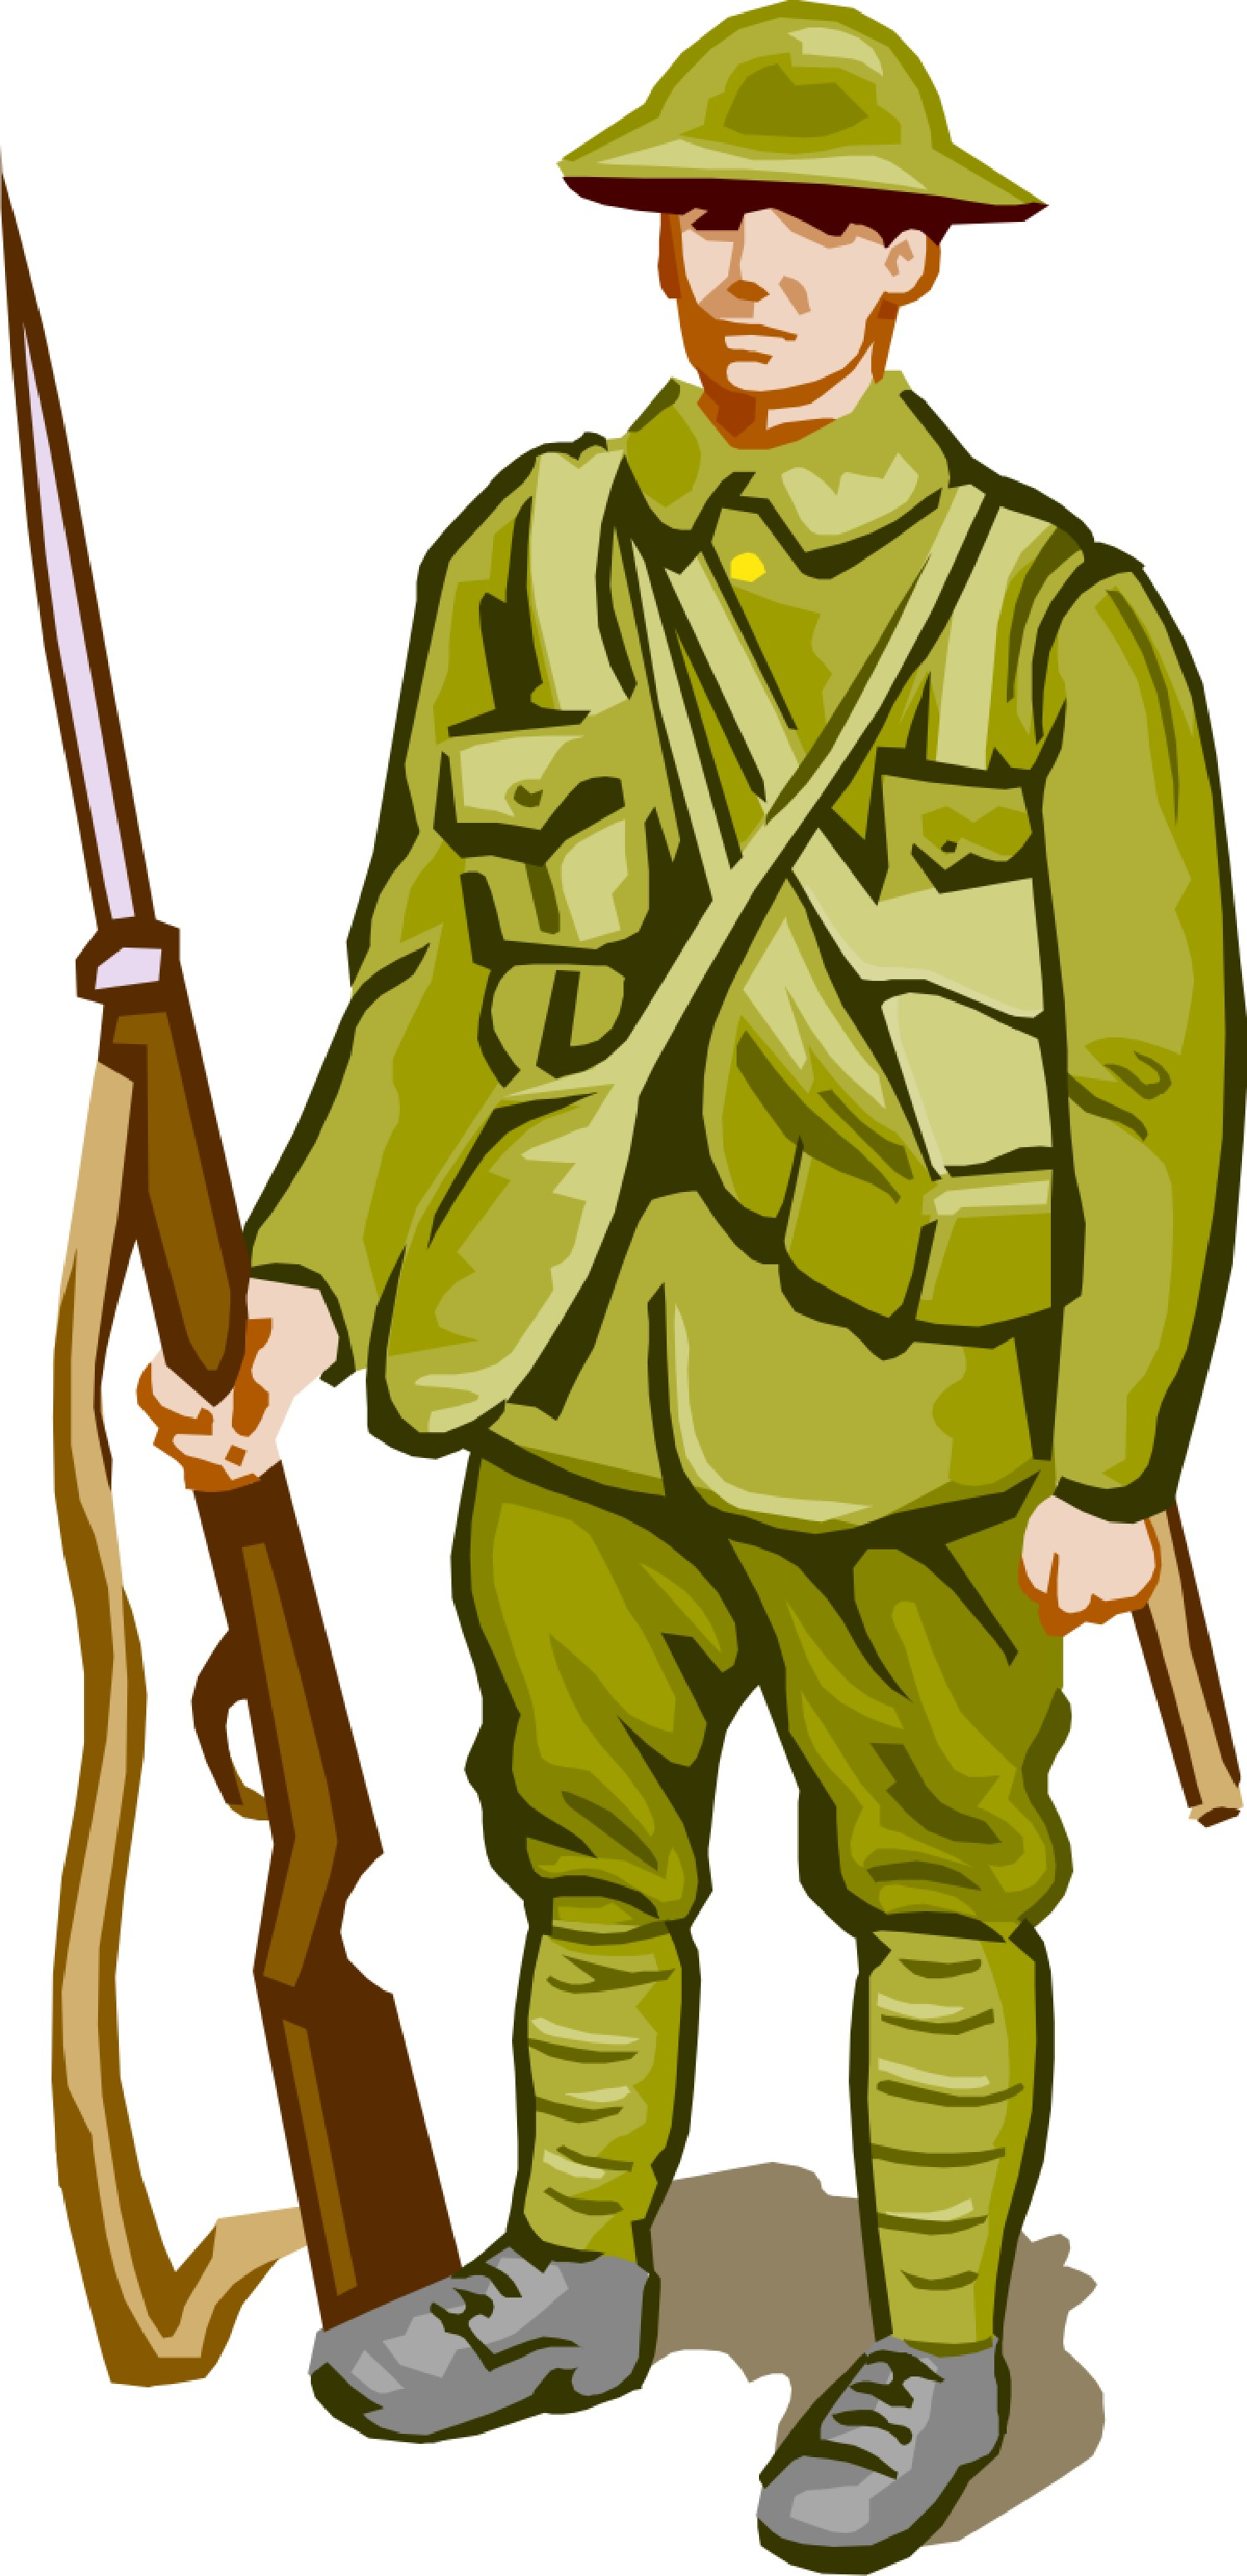 Soldiers Of World War 1 Clipart - Clipart Kid